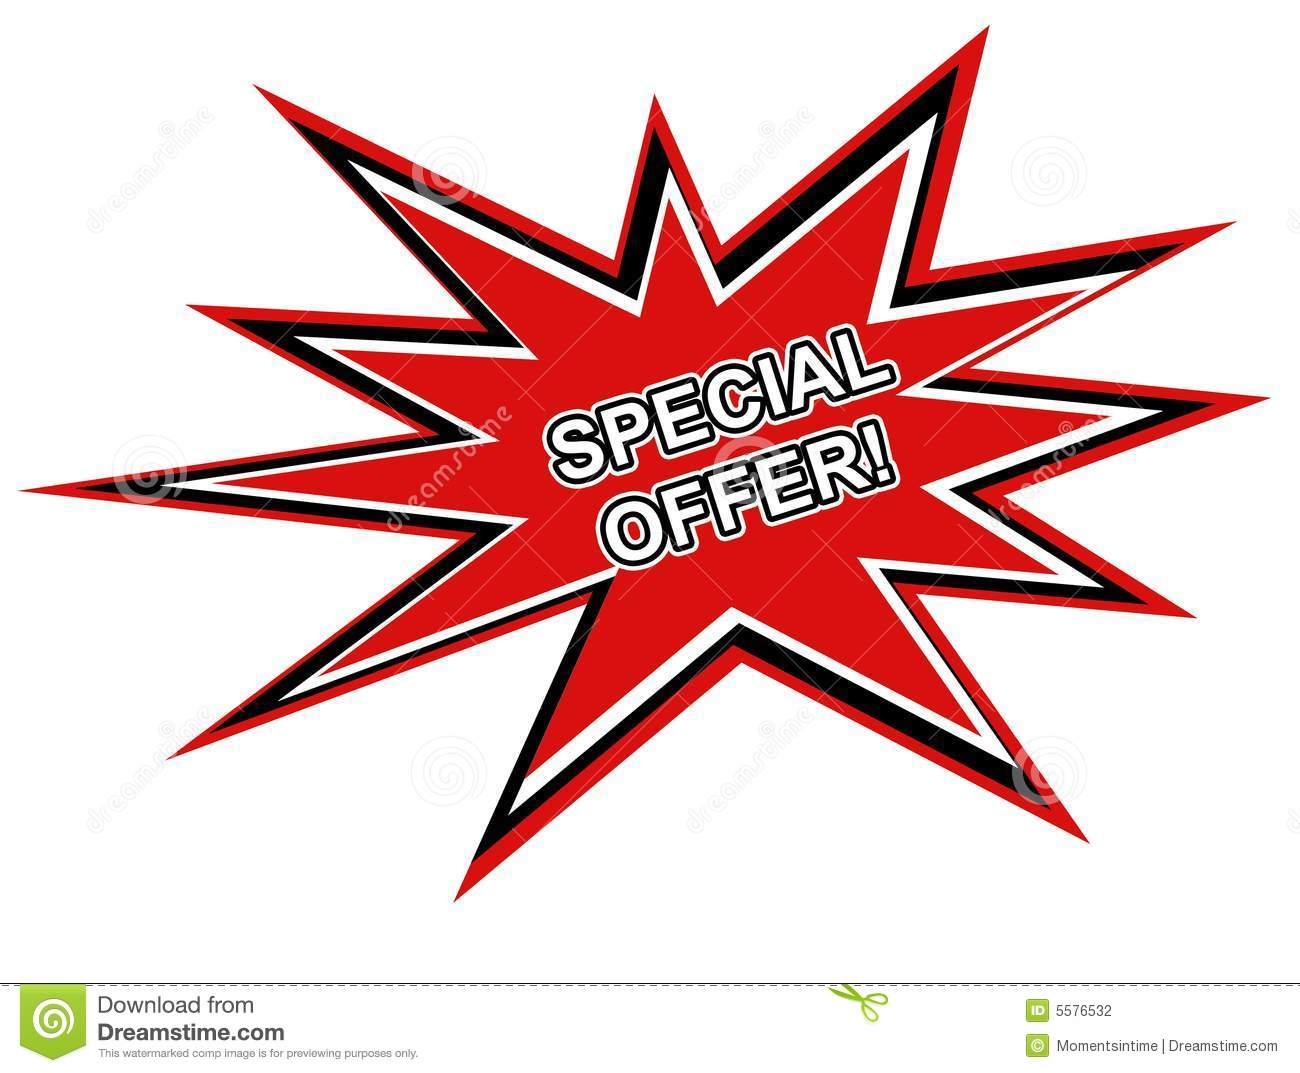 Special Offer web graphic